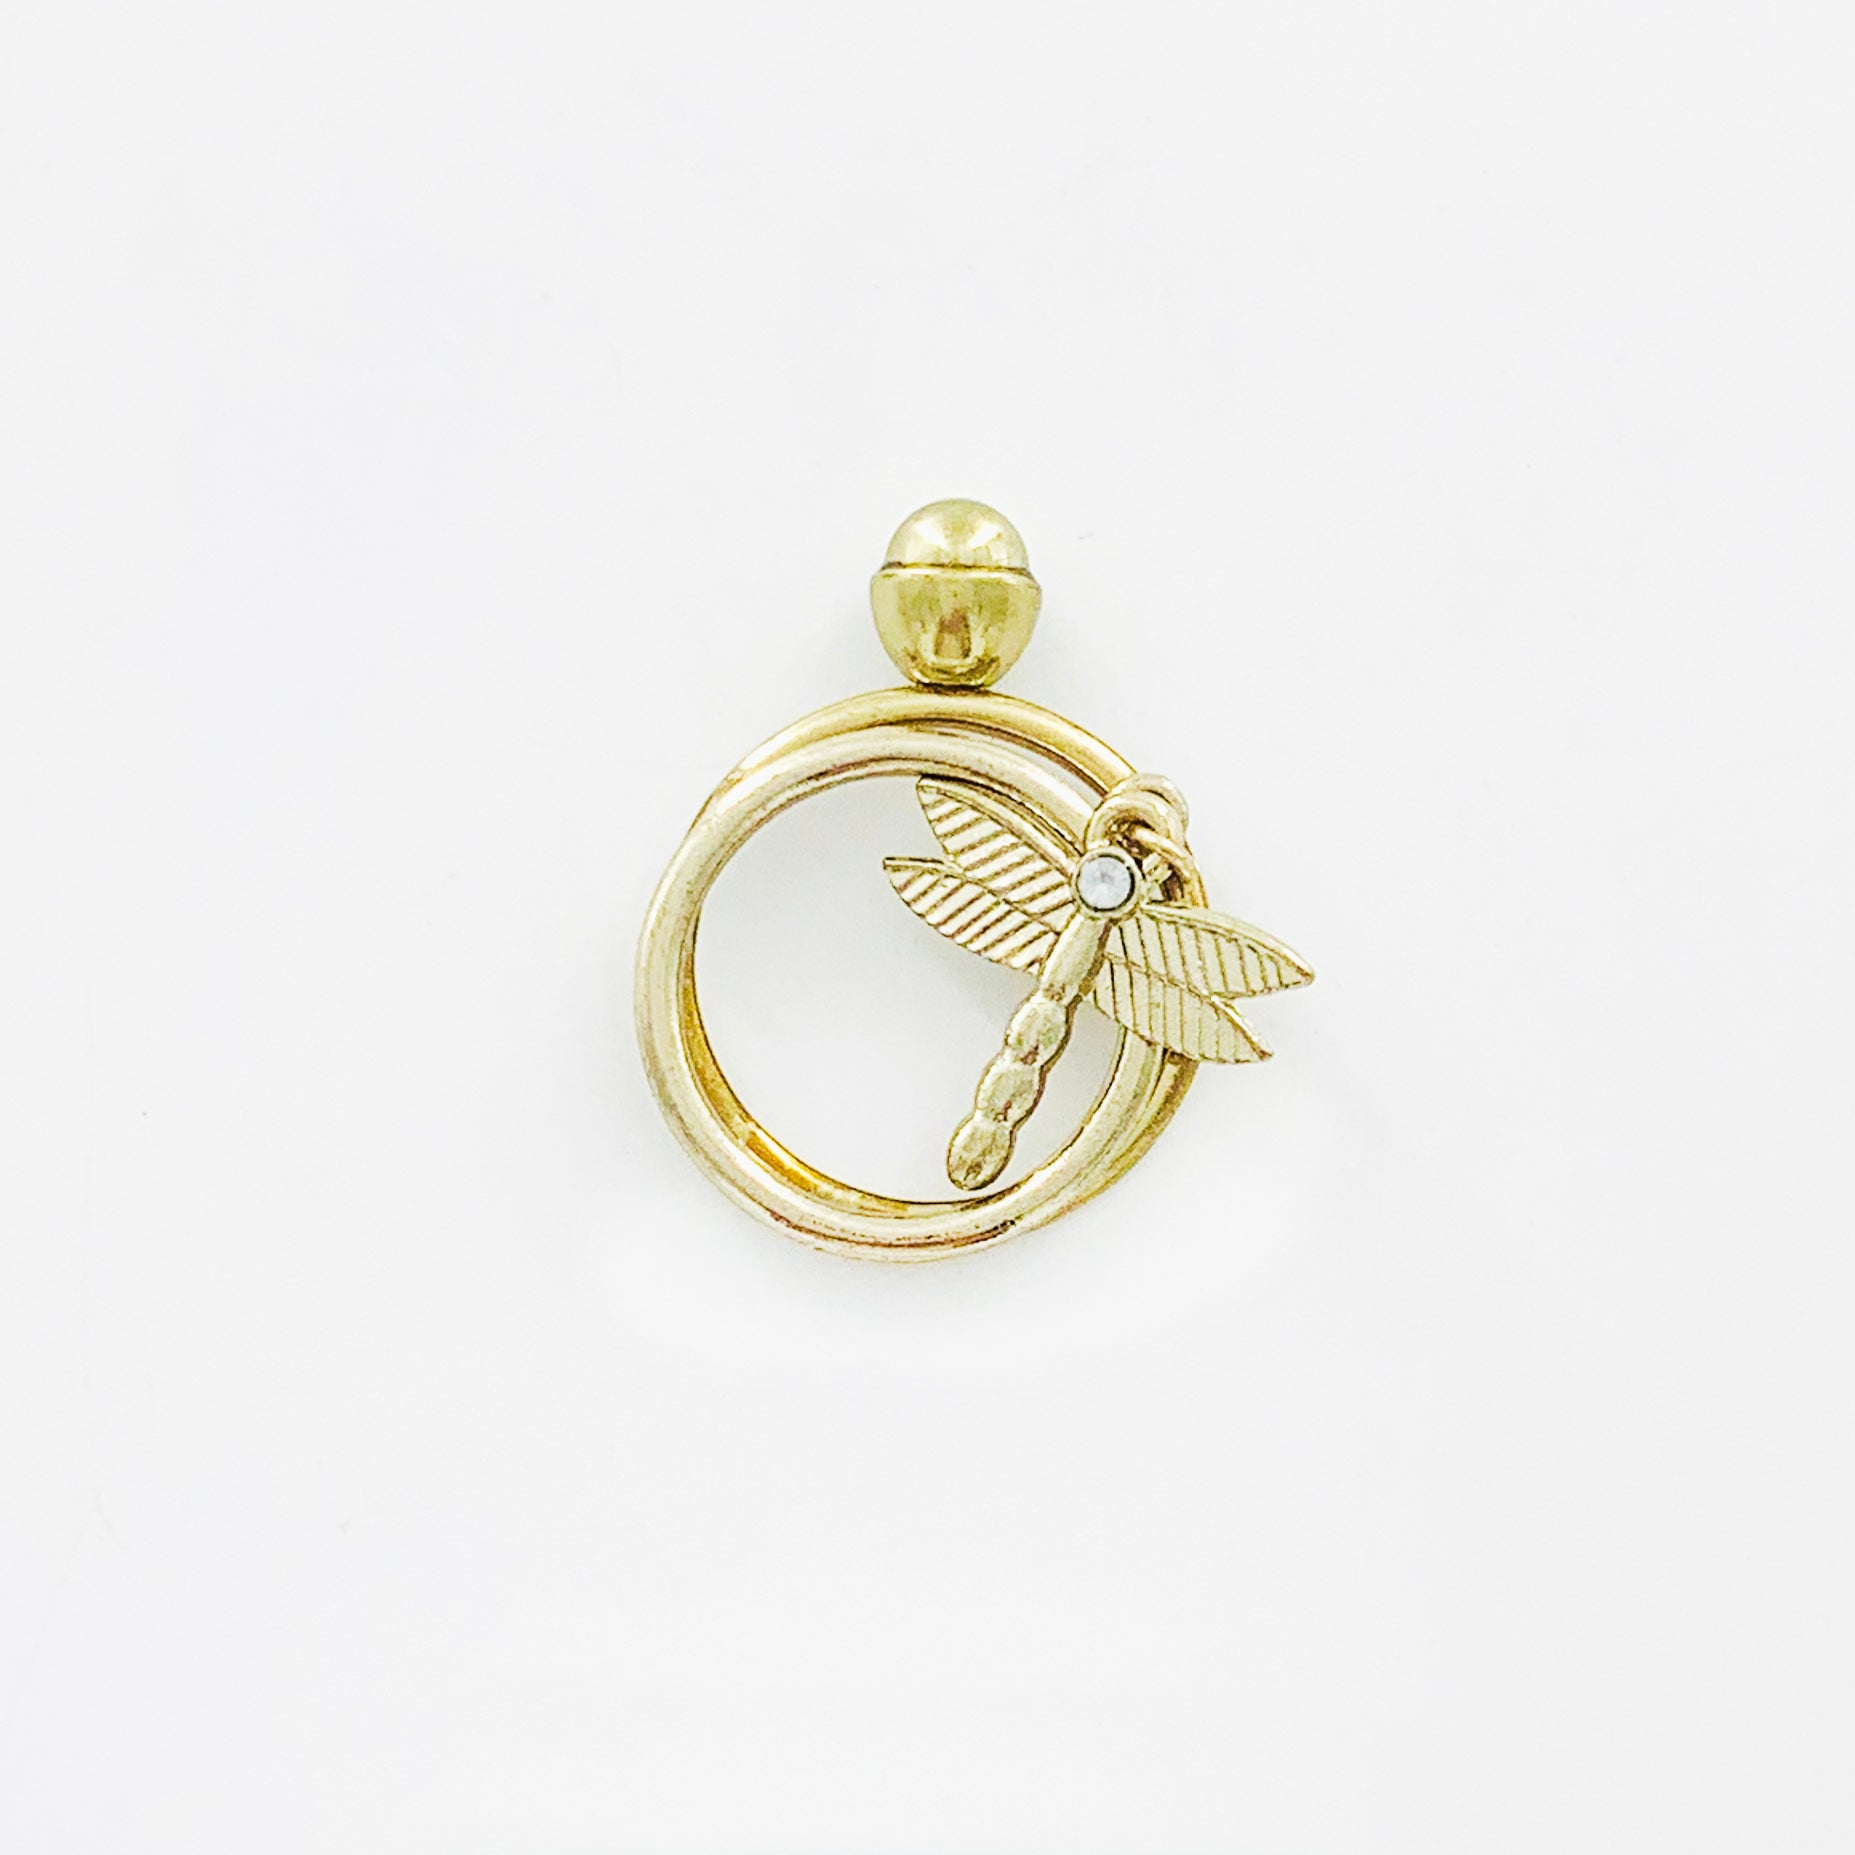 Thin gold rings with dangling dragonfly charm